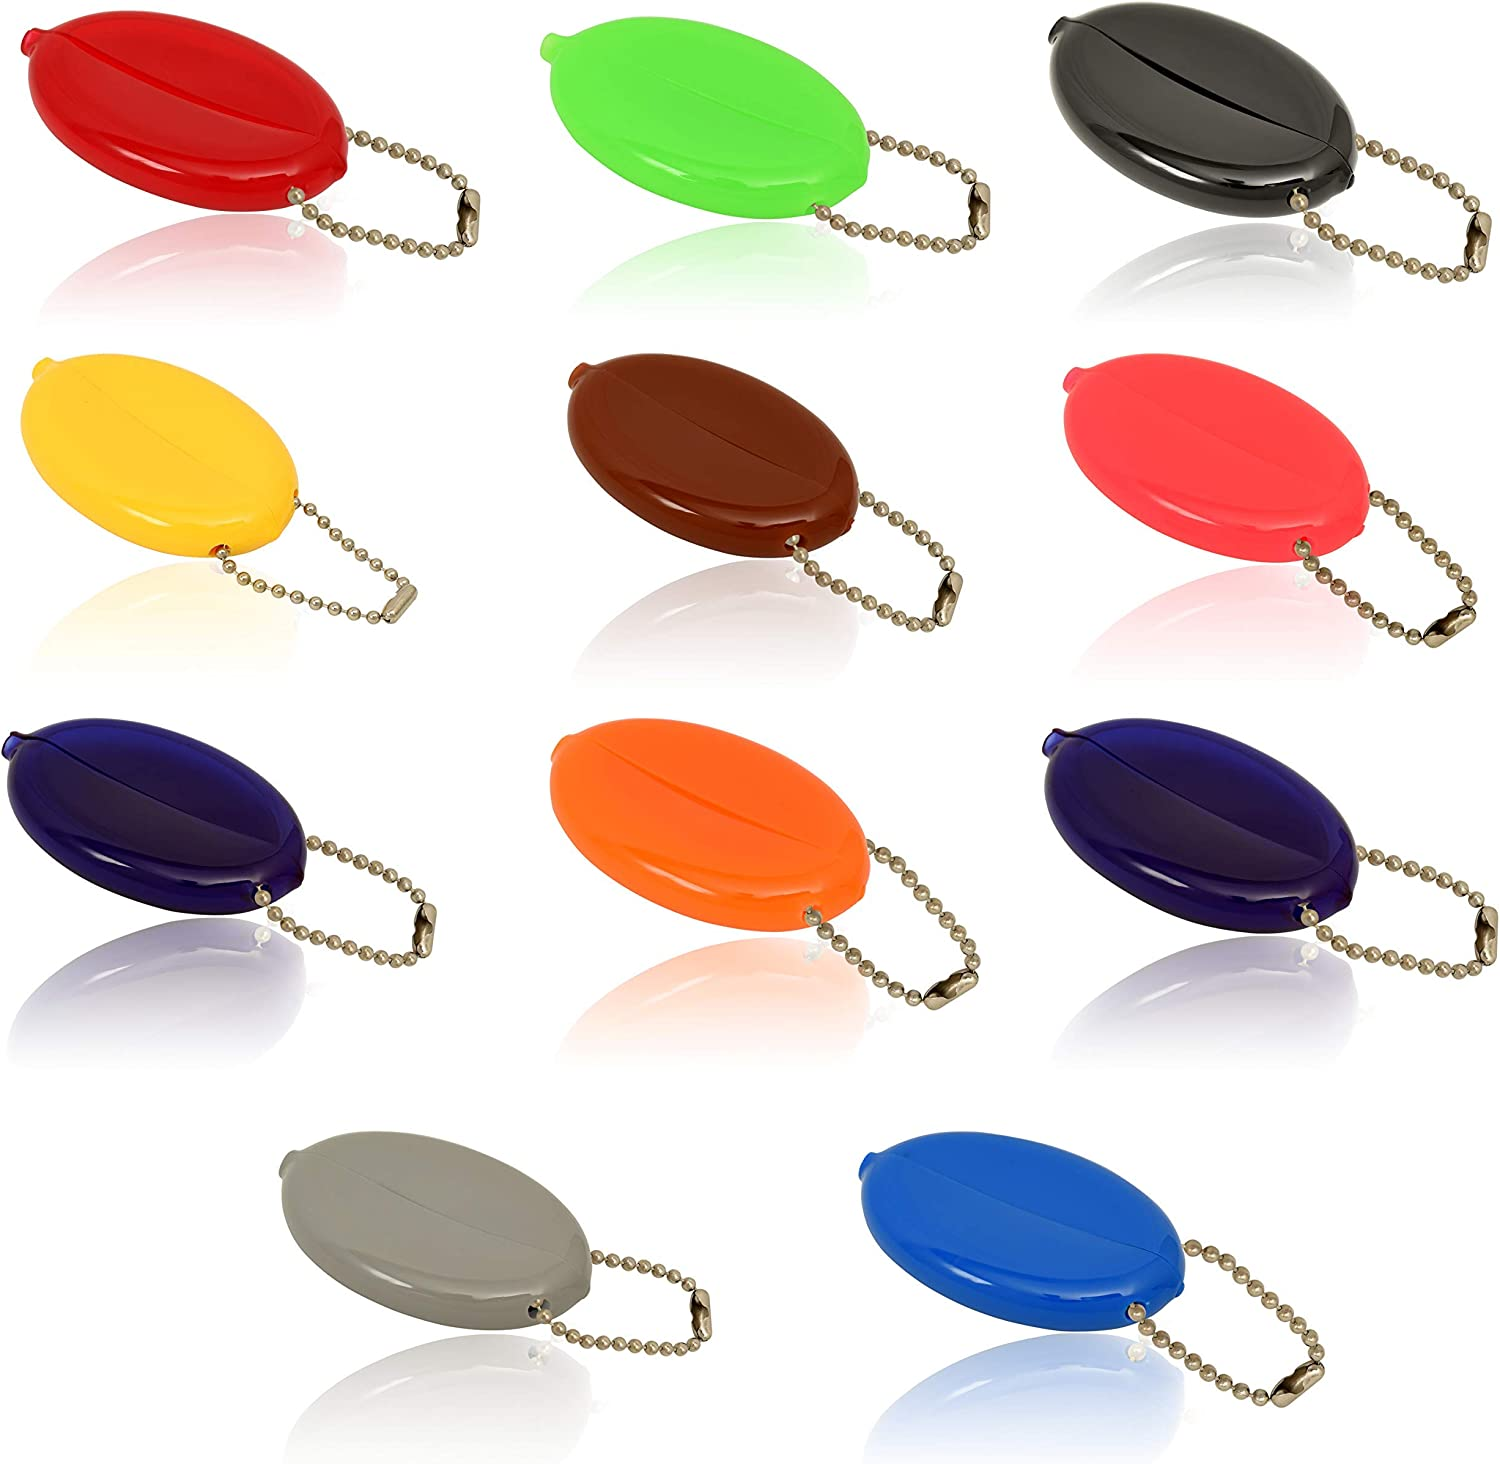 Oval Rubber Coin Purse Change Holder Made in U.S.A. For Men/Woman With Chain By Nabob (5 Pack Mixed Colors)